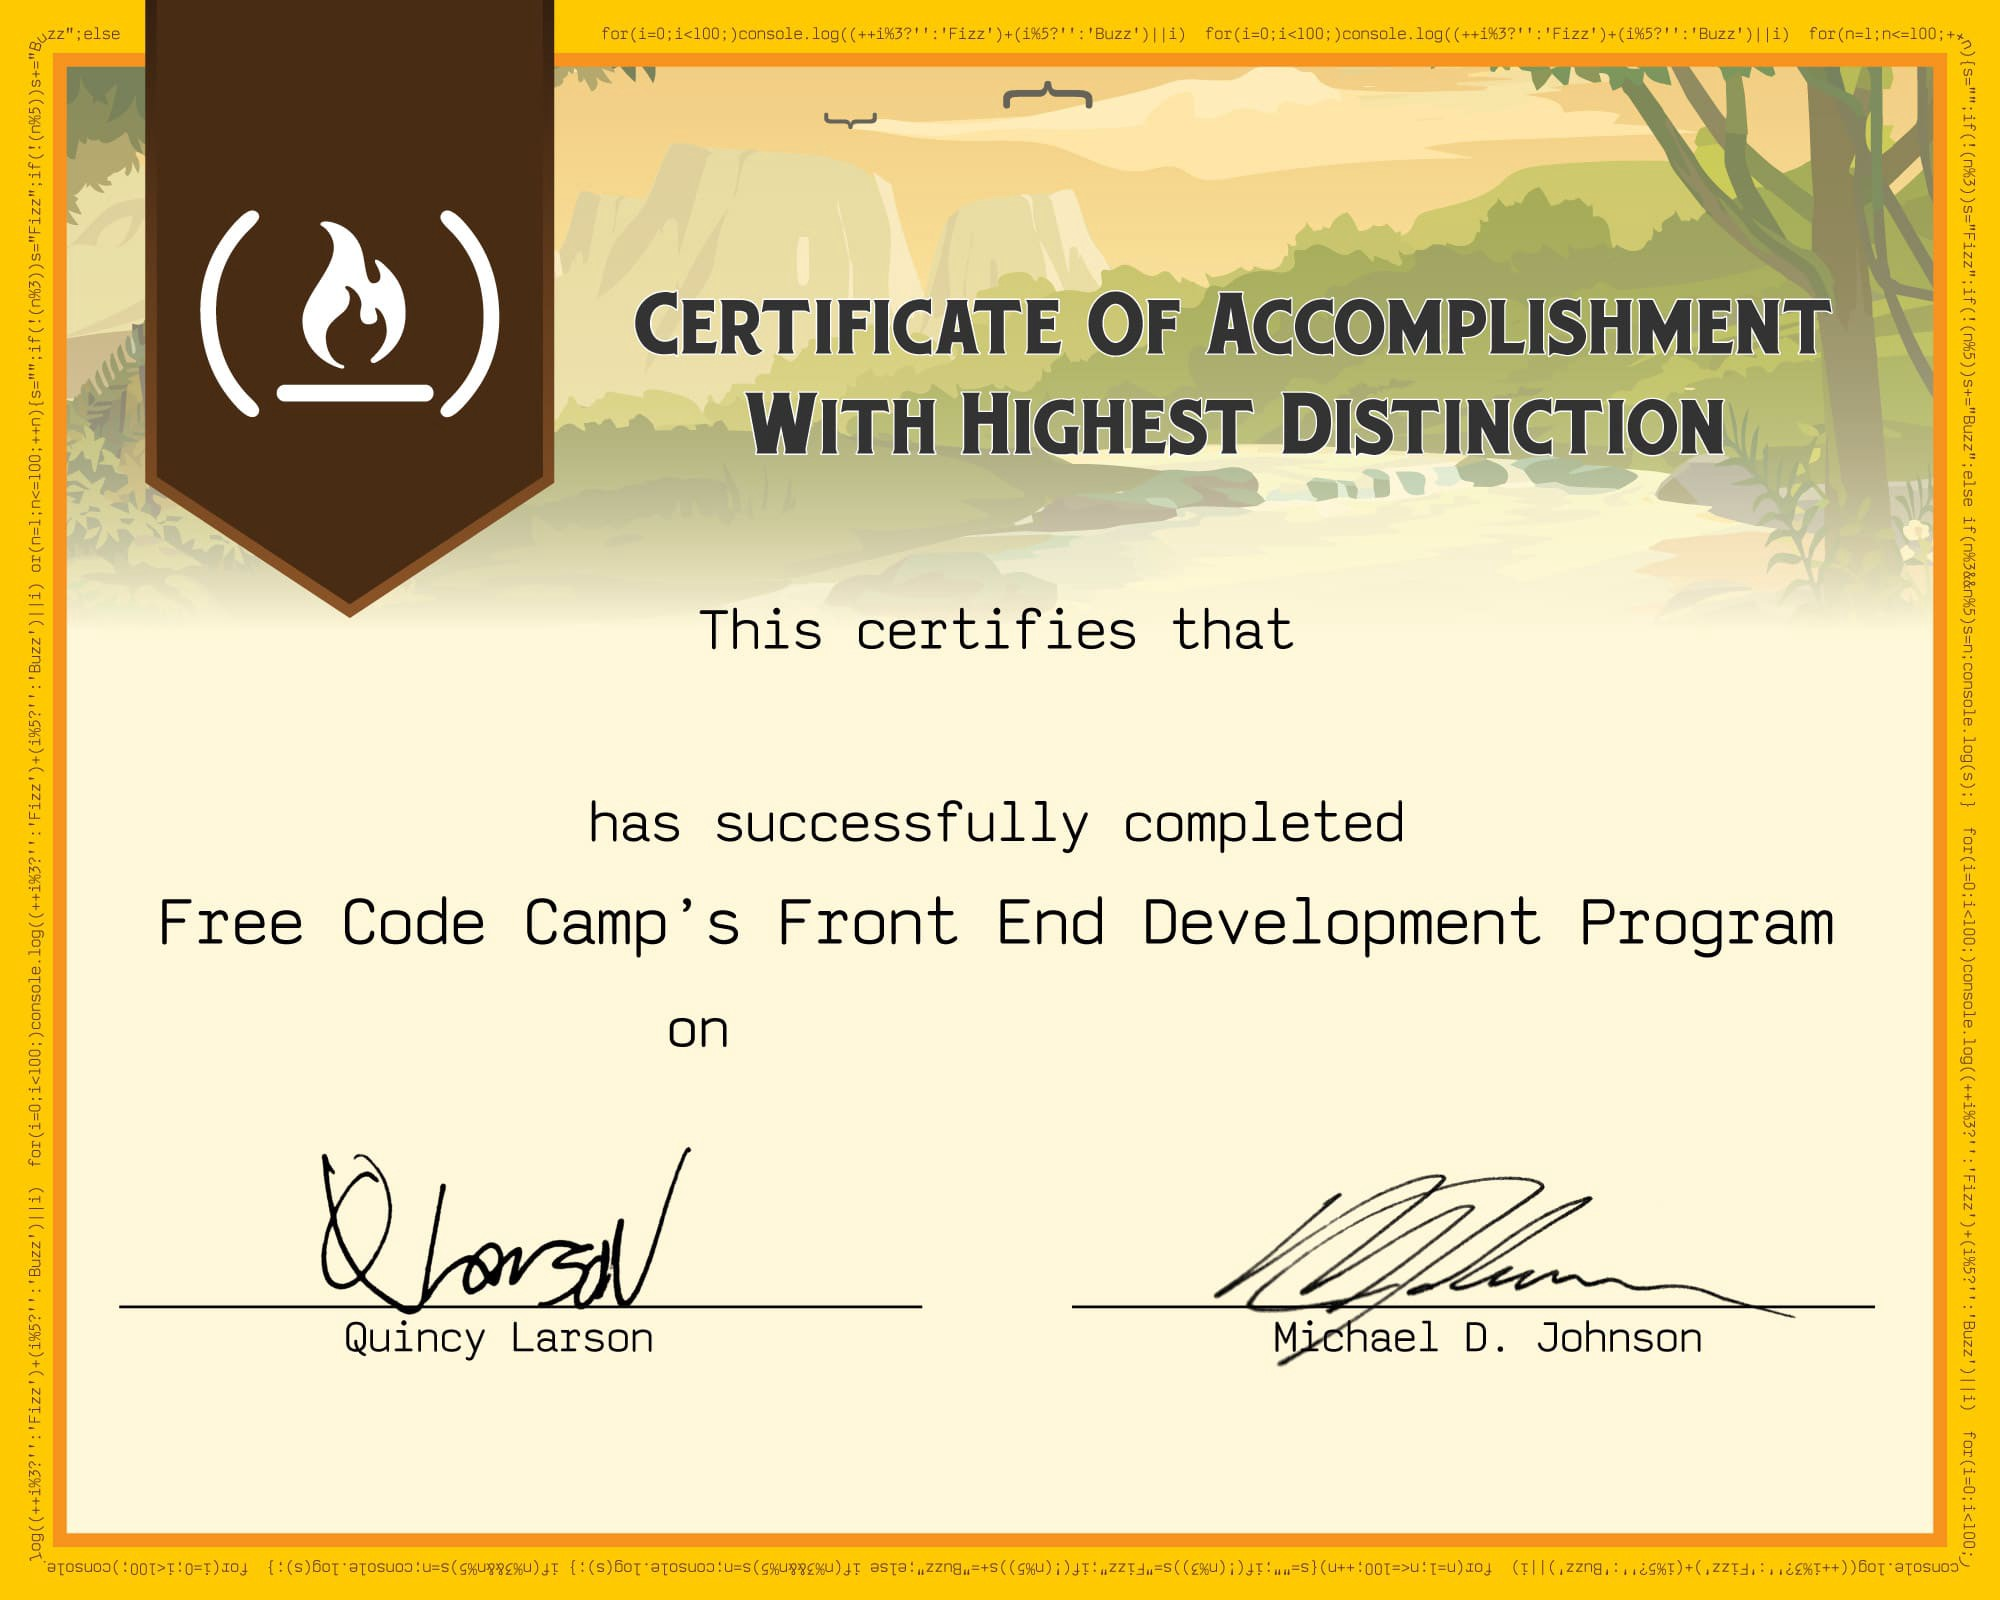 Freecodecamp Front End Certificate Achievement 3dw1nm0535 Medium